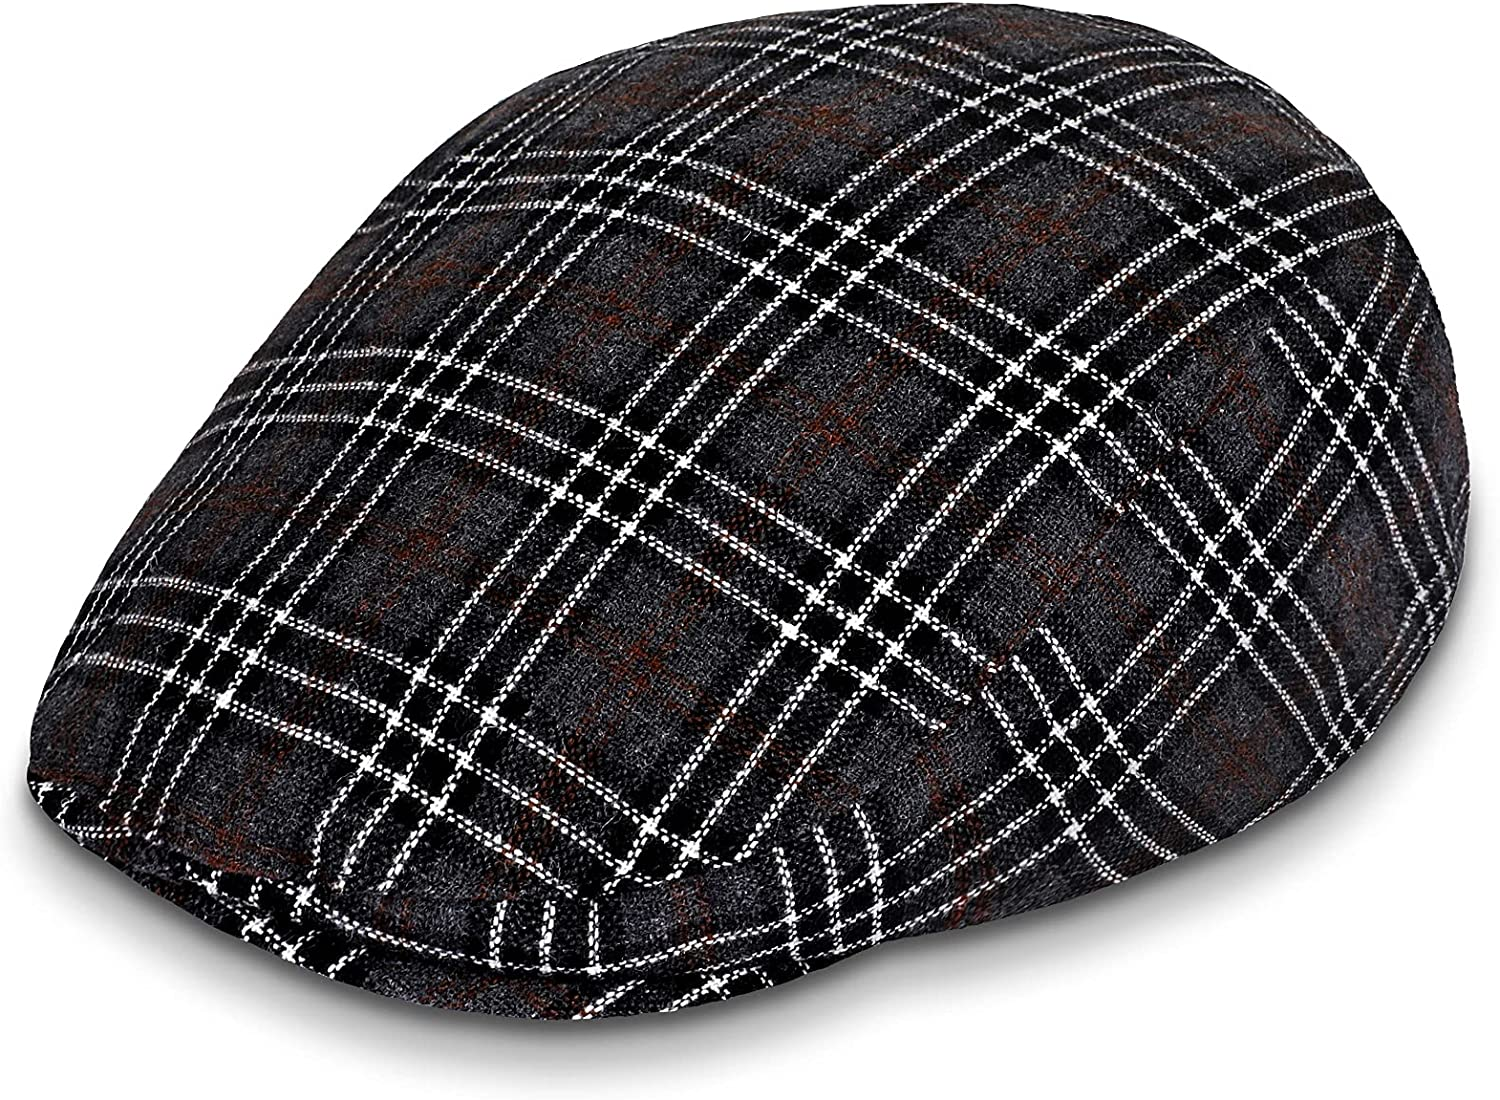 Breathable Newsboy Hat for Men Mens Flat Cap Summer Scally Paperboy Irish Drivers Gatsby Cabbie Ivy Beret